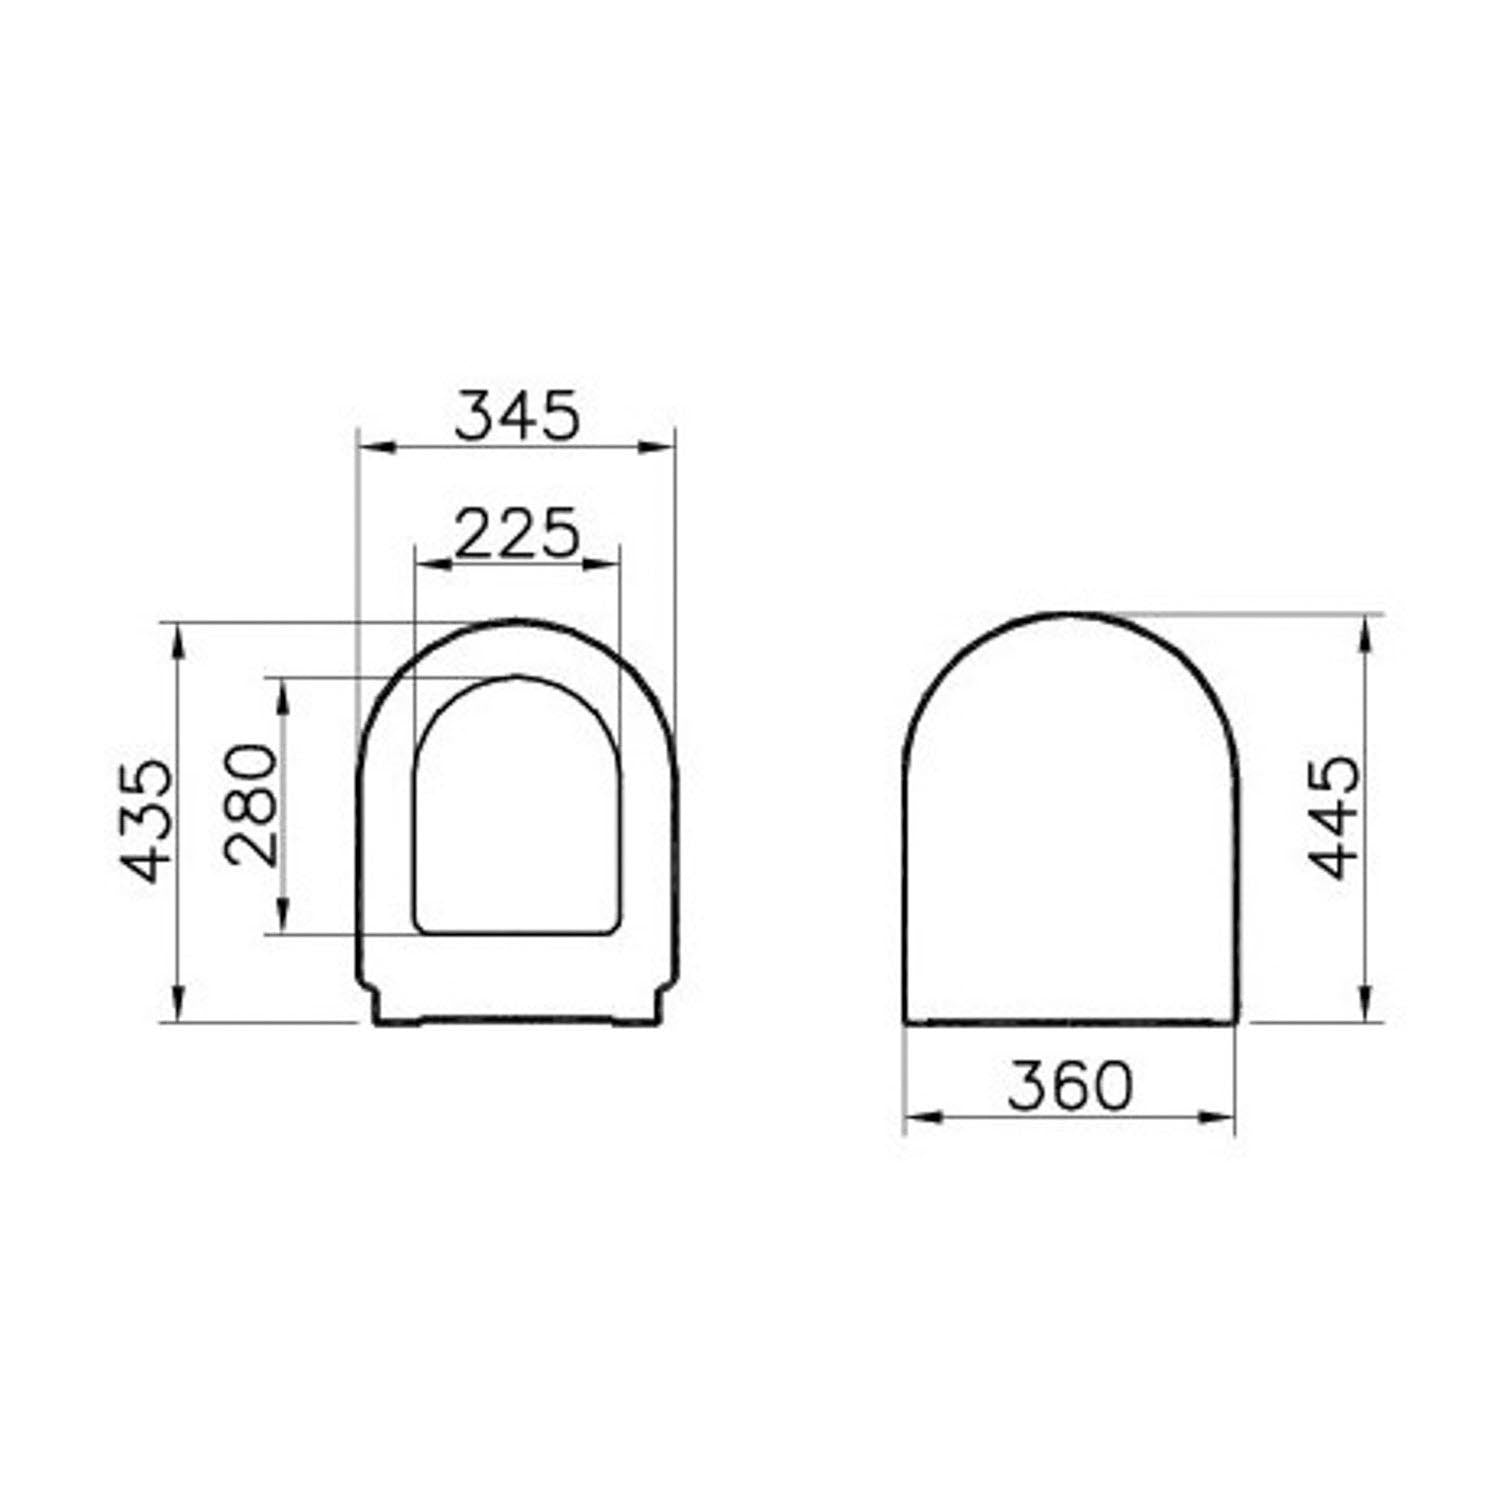 Vesta Close Coupled Seat and Cover dimensional drawing